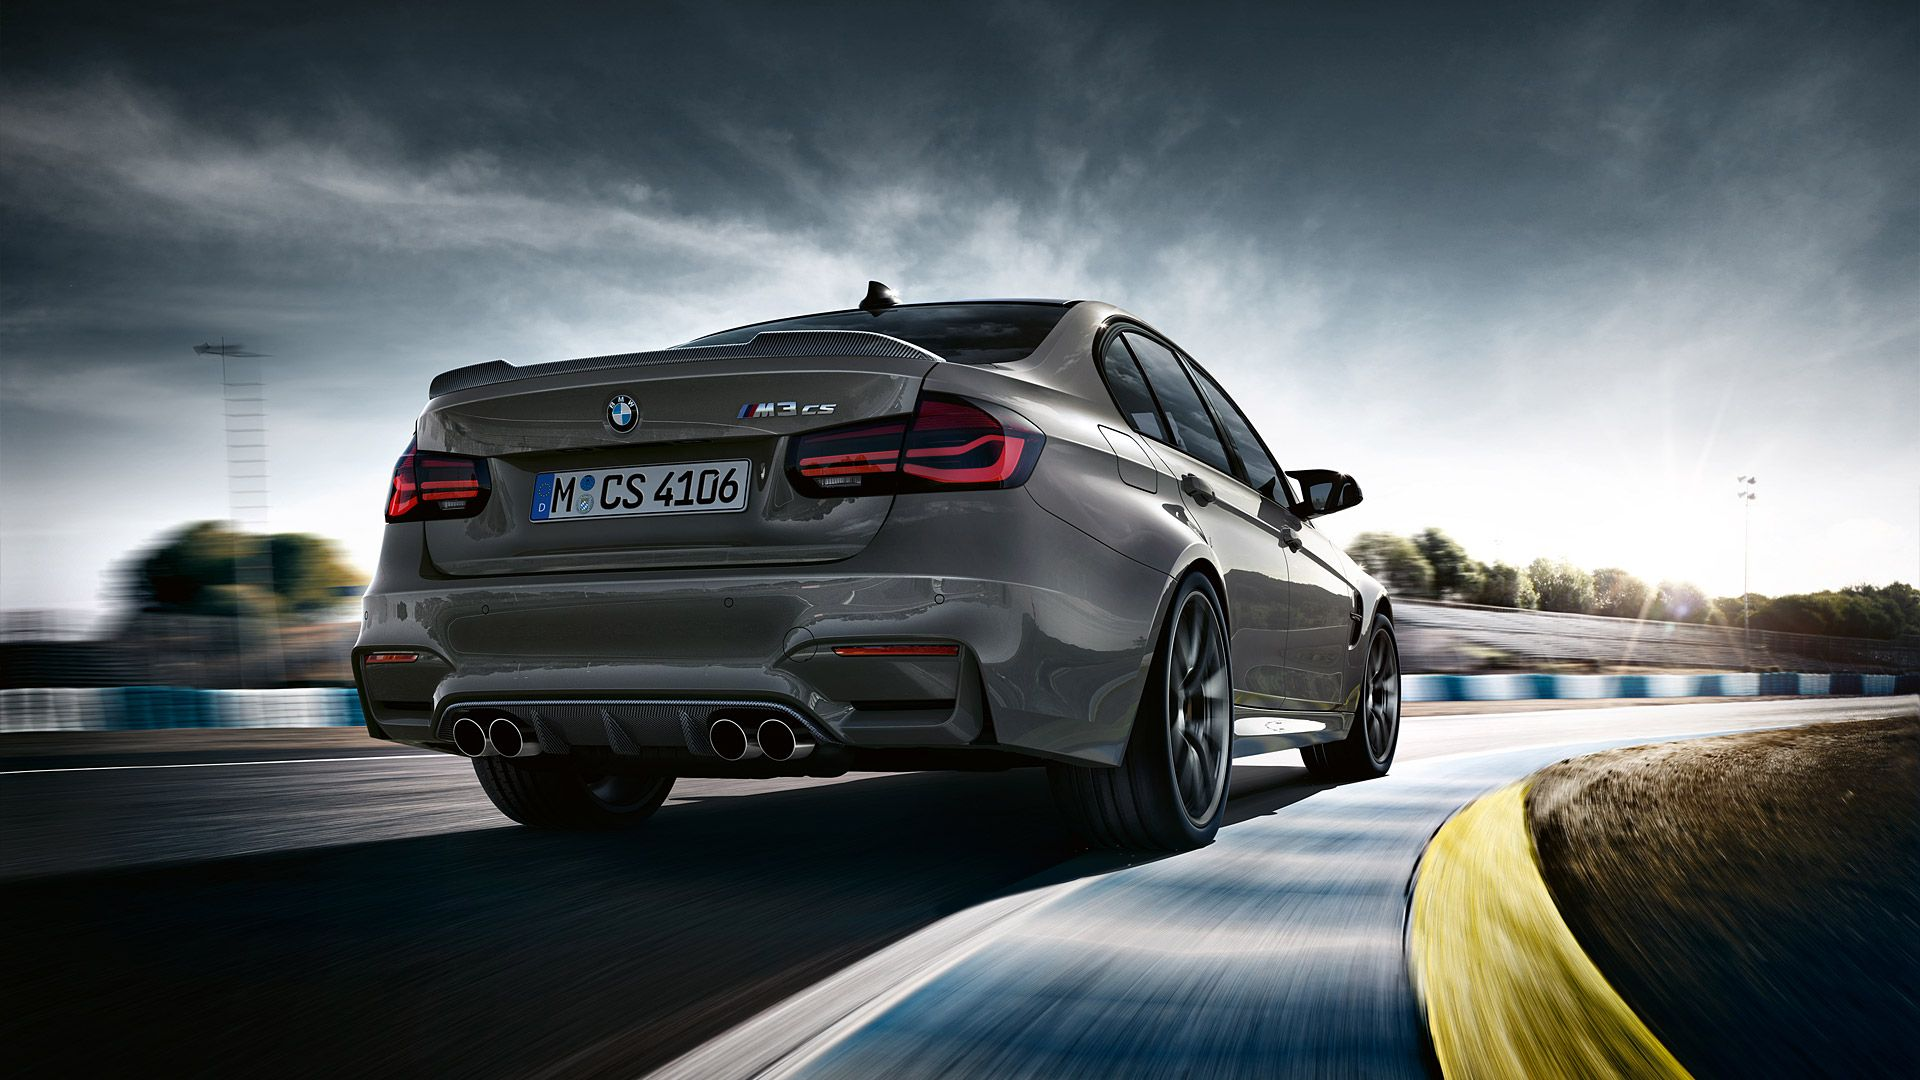 Bmw F80 Wallpapers Wallpaper Cave